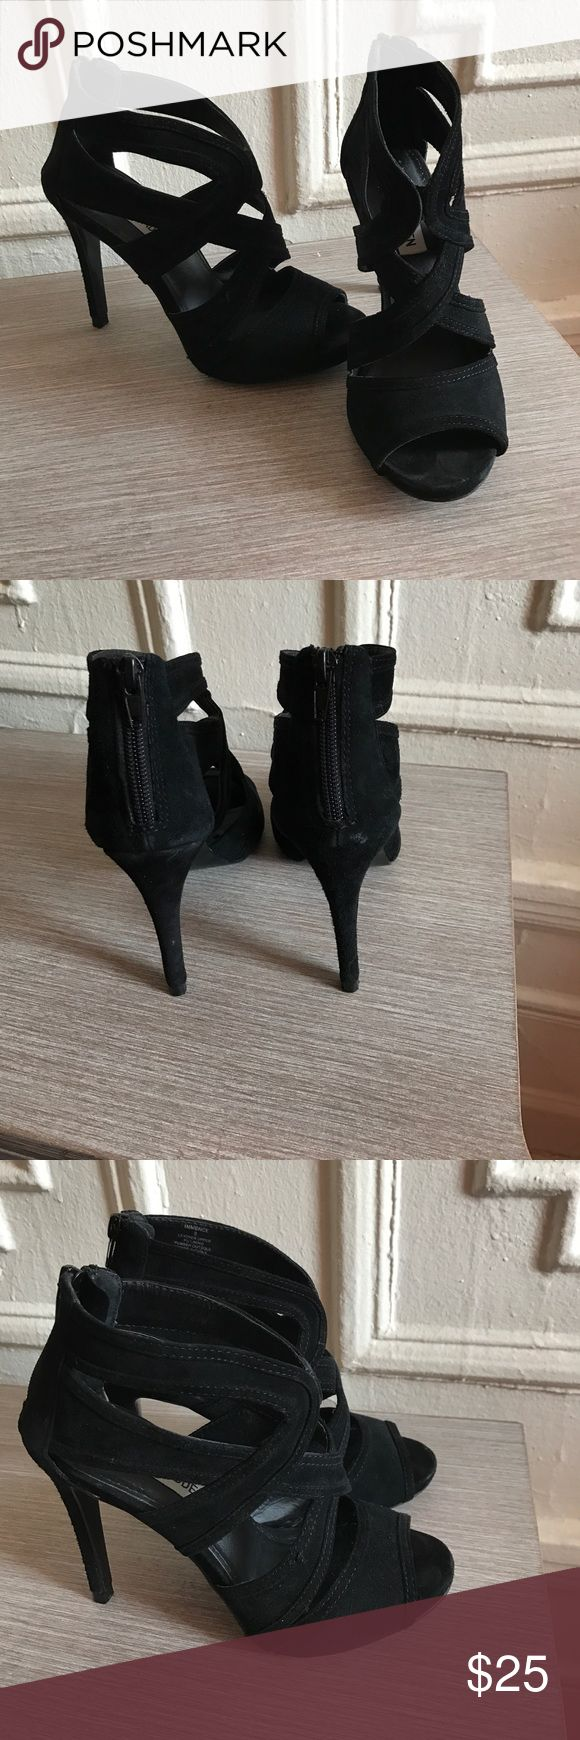 Steven madden black heels zip in back Super comfortable black heels in great shape! True to size! Would not recommend for any ladies or gents that wear a 5.5 Steve Madden Shoes Heels